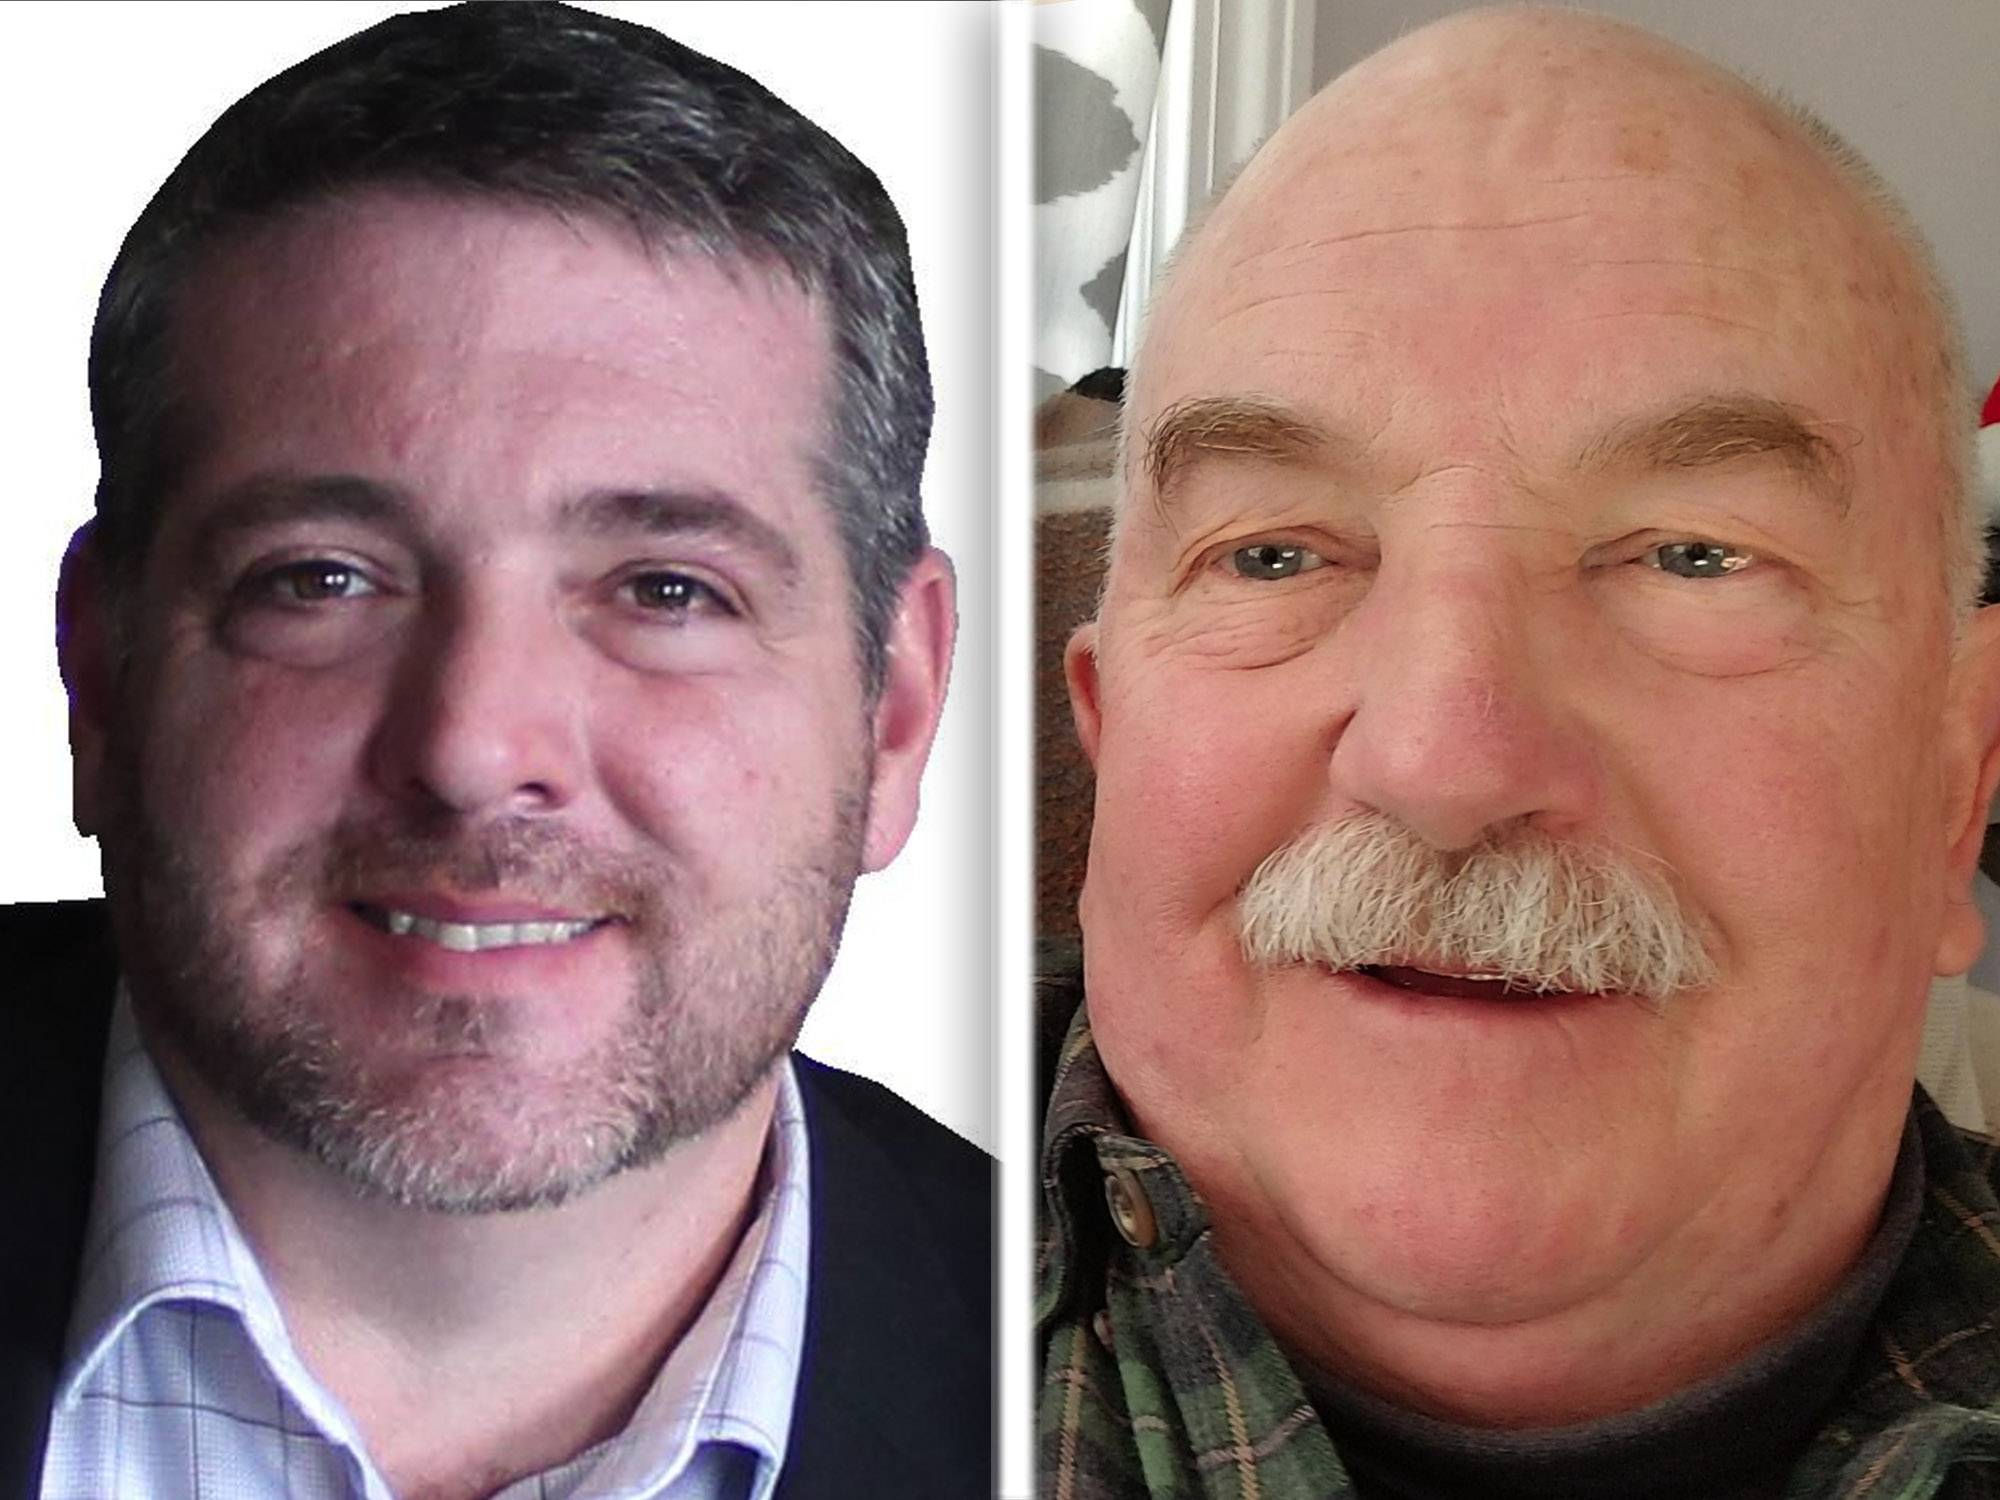 Dick Barr, left, and James Creighton Mitchell Jr., right, are Republican candidates for Lake County Board District 3 seat.